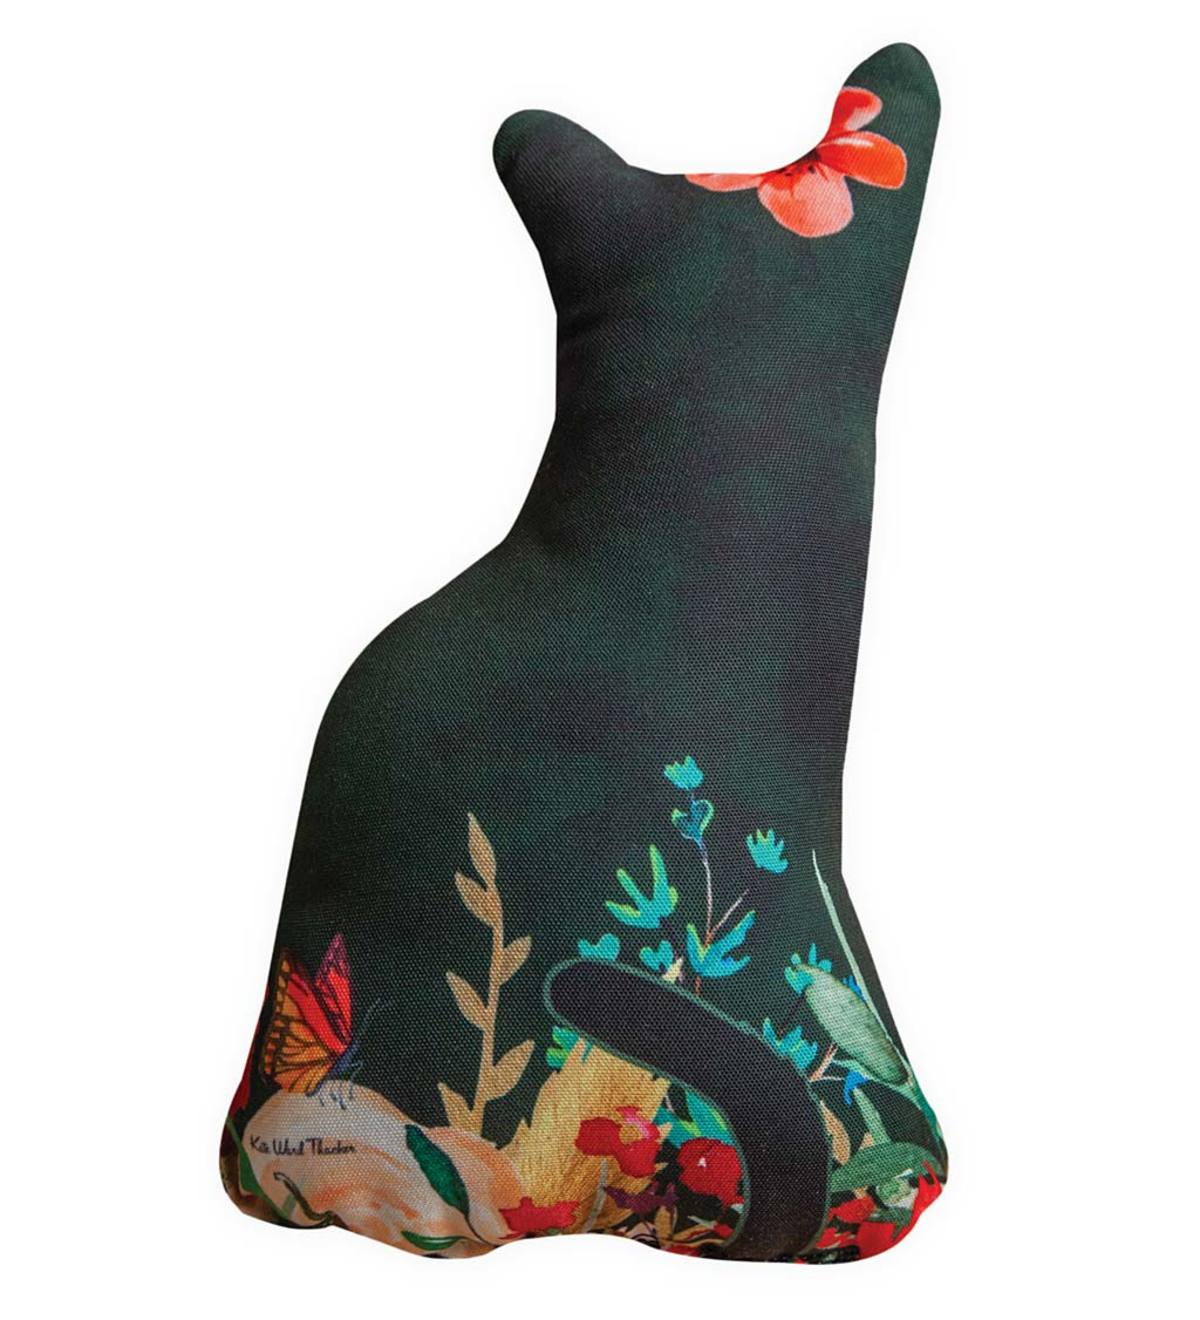 Cat-Shaped Decorative Pillow - Green